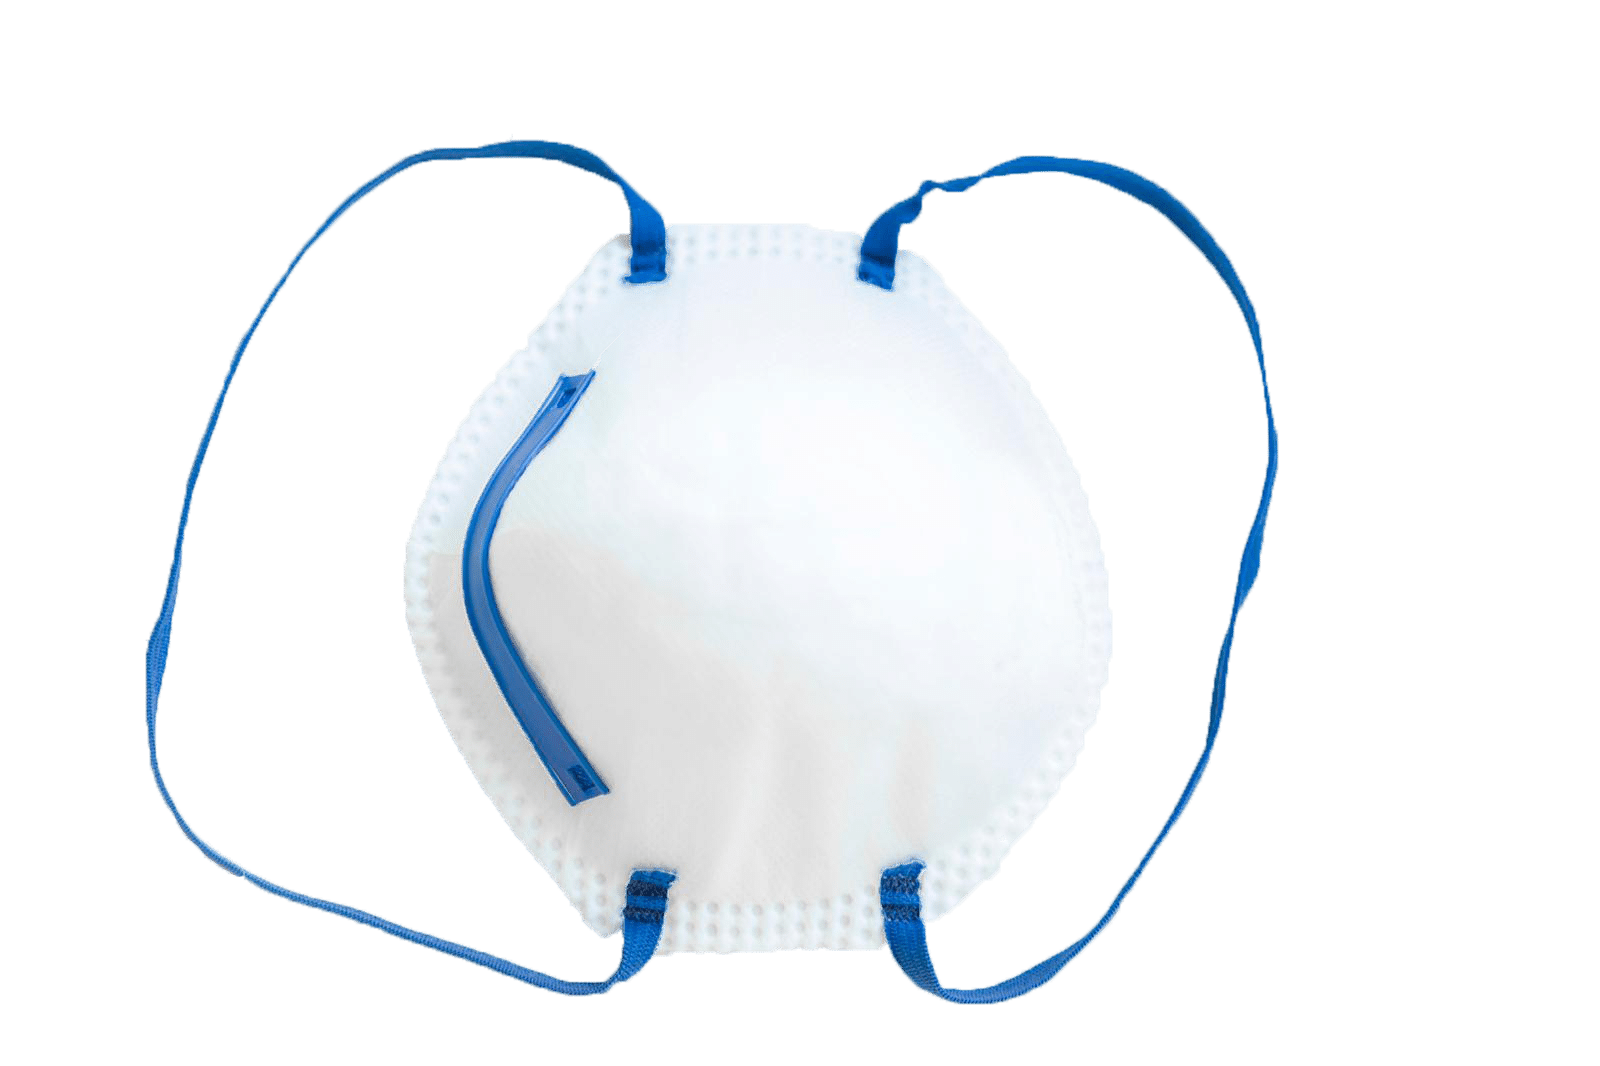 N95 mask. N95 Protective Cupped Respirator Mask. 65/5000 dome-shaped mask. white color, perfect for protection against coronavirus